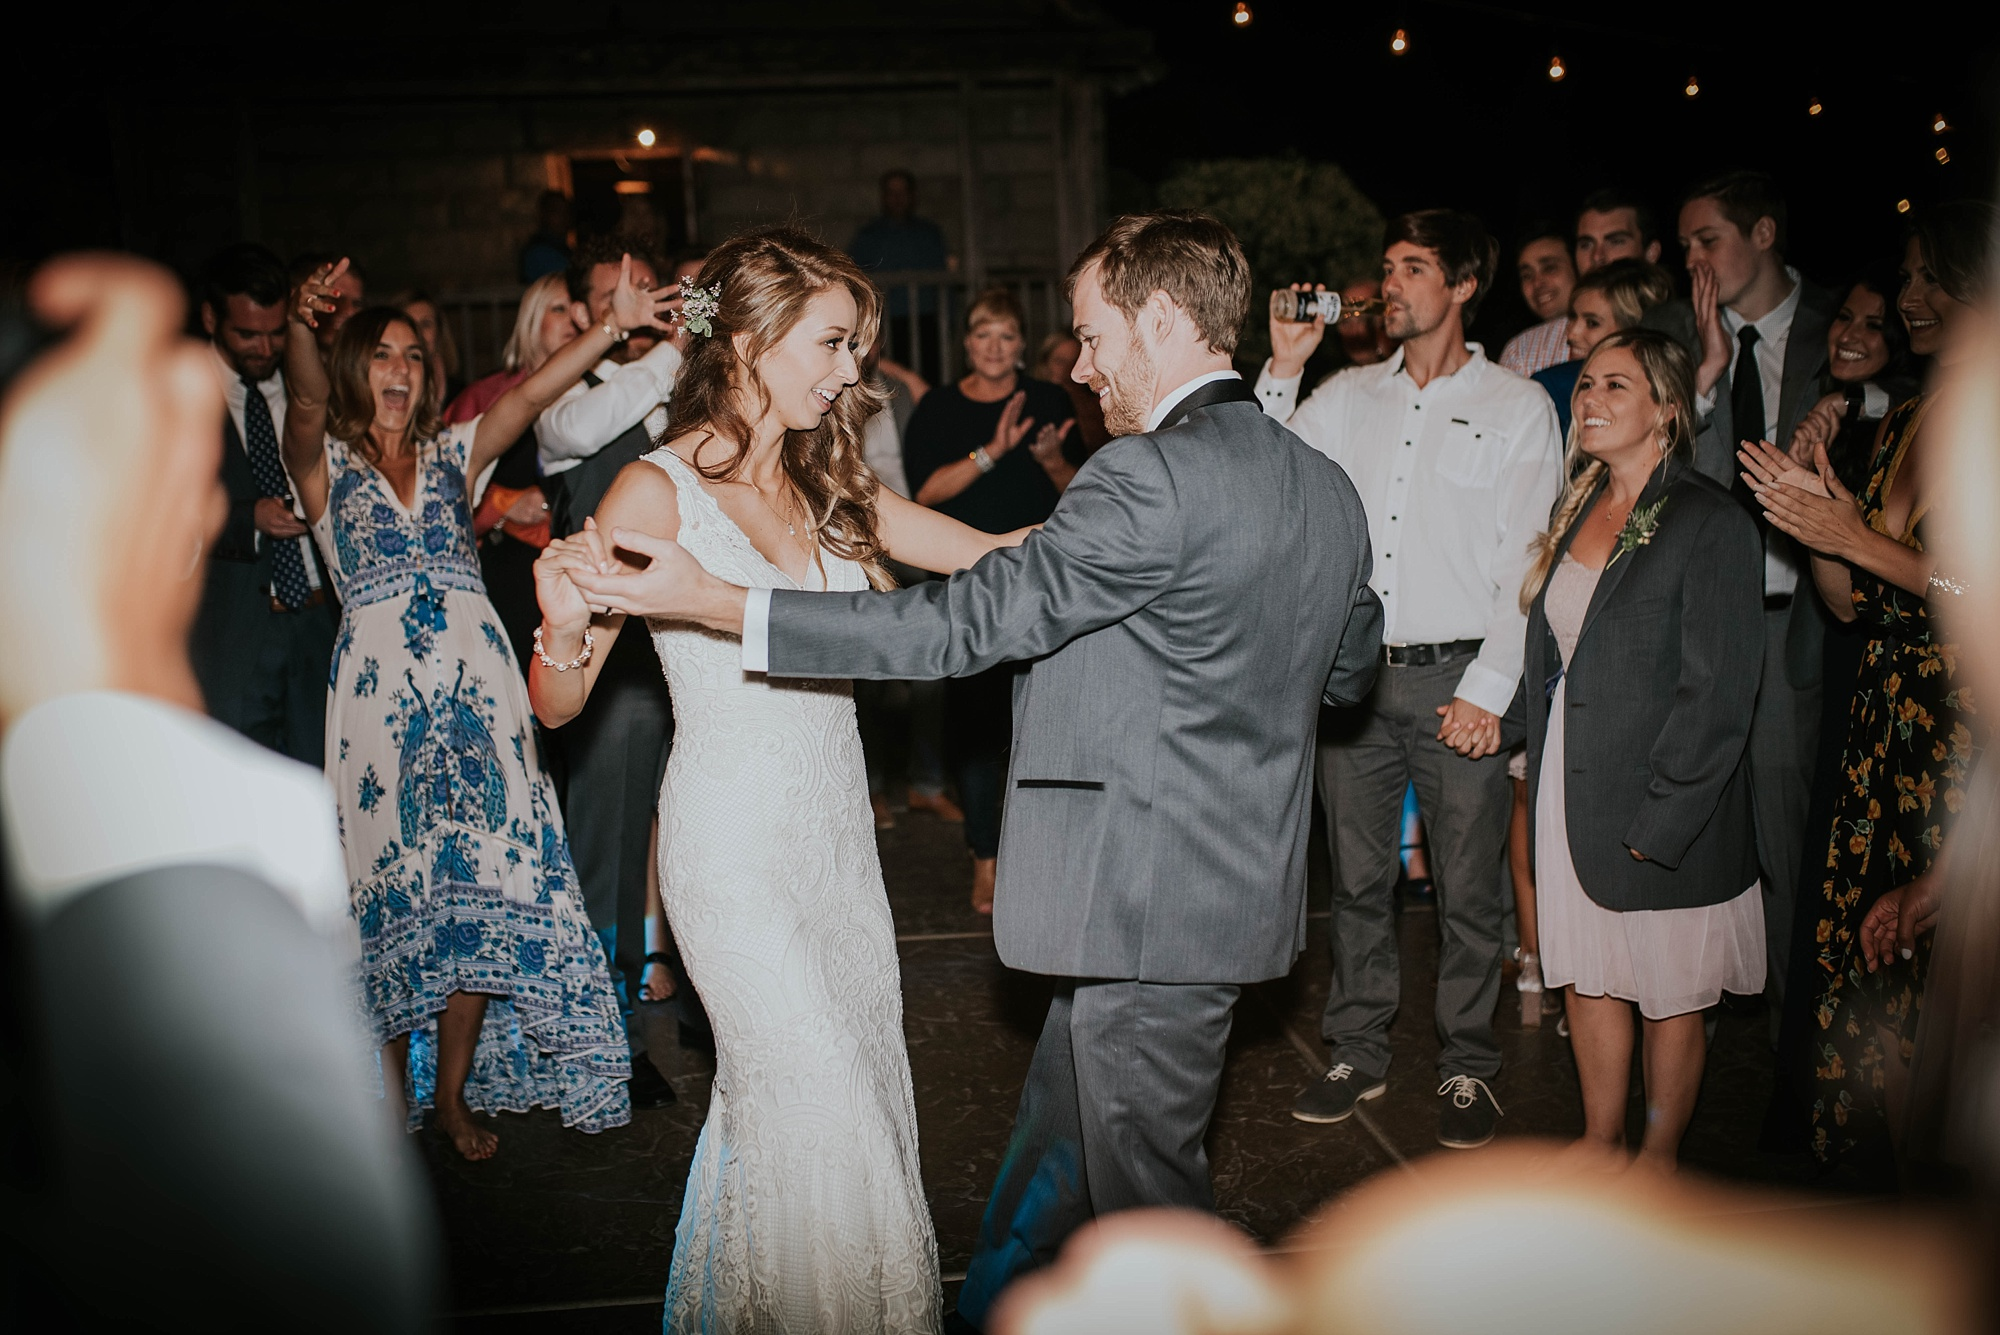 Dance party kicks off at temcula creek inn wedding in california